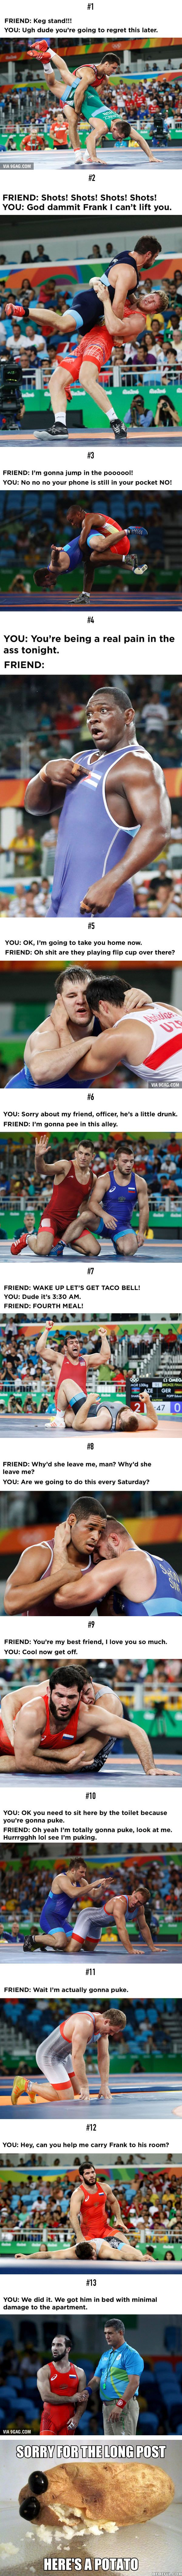 13 Wrestling Photos Teach You How To Take Care Of Your Drunk Friends - 9GAG